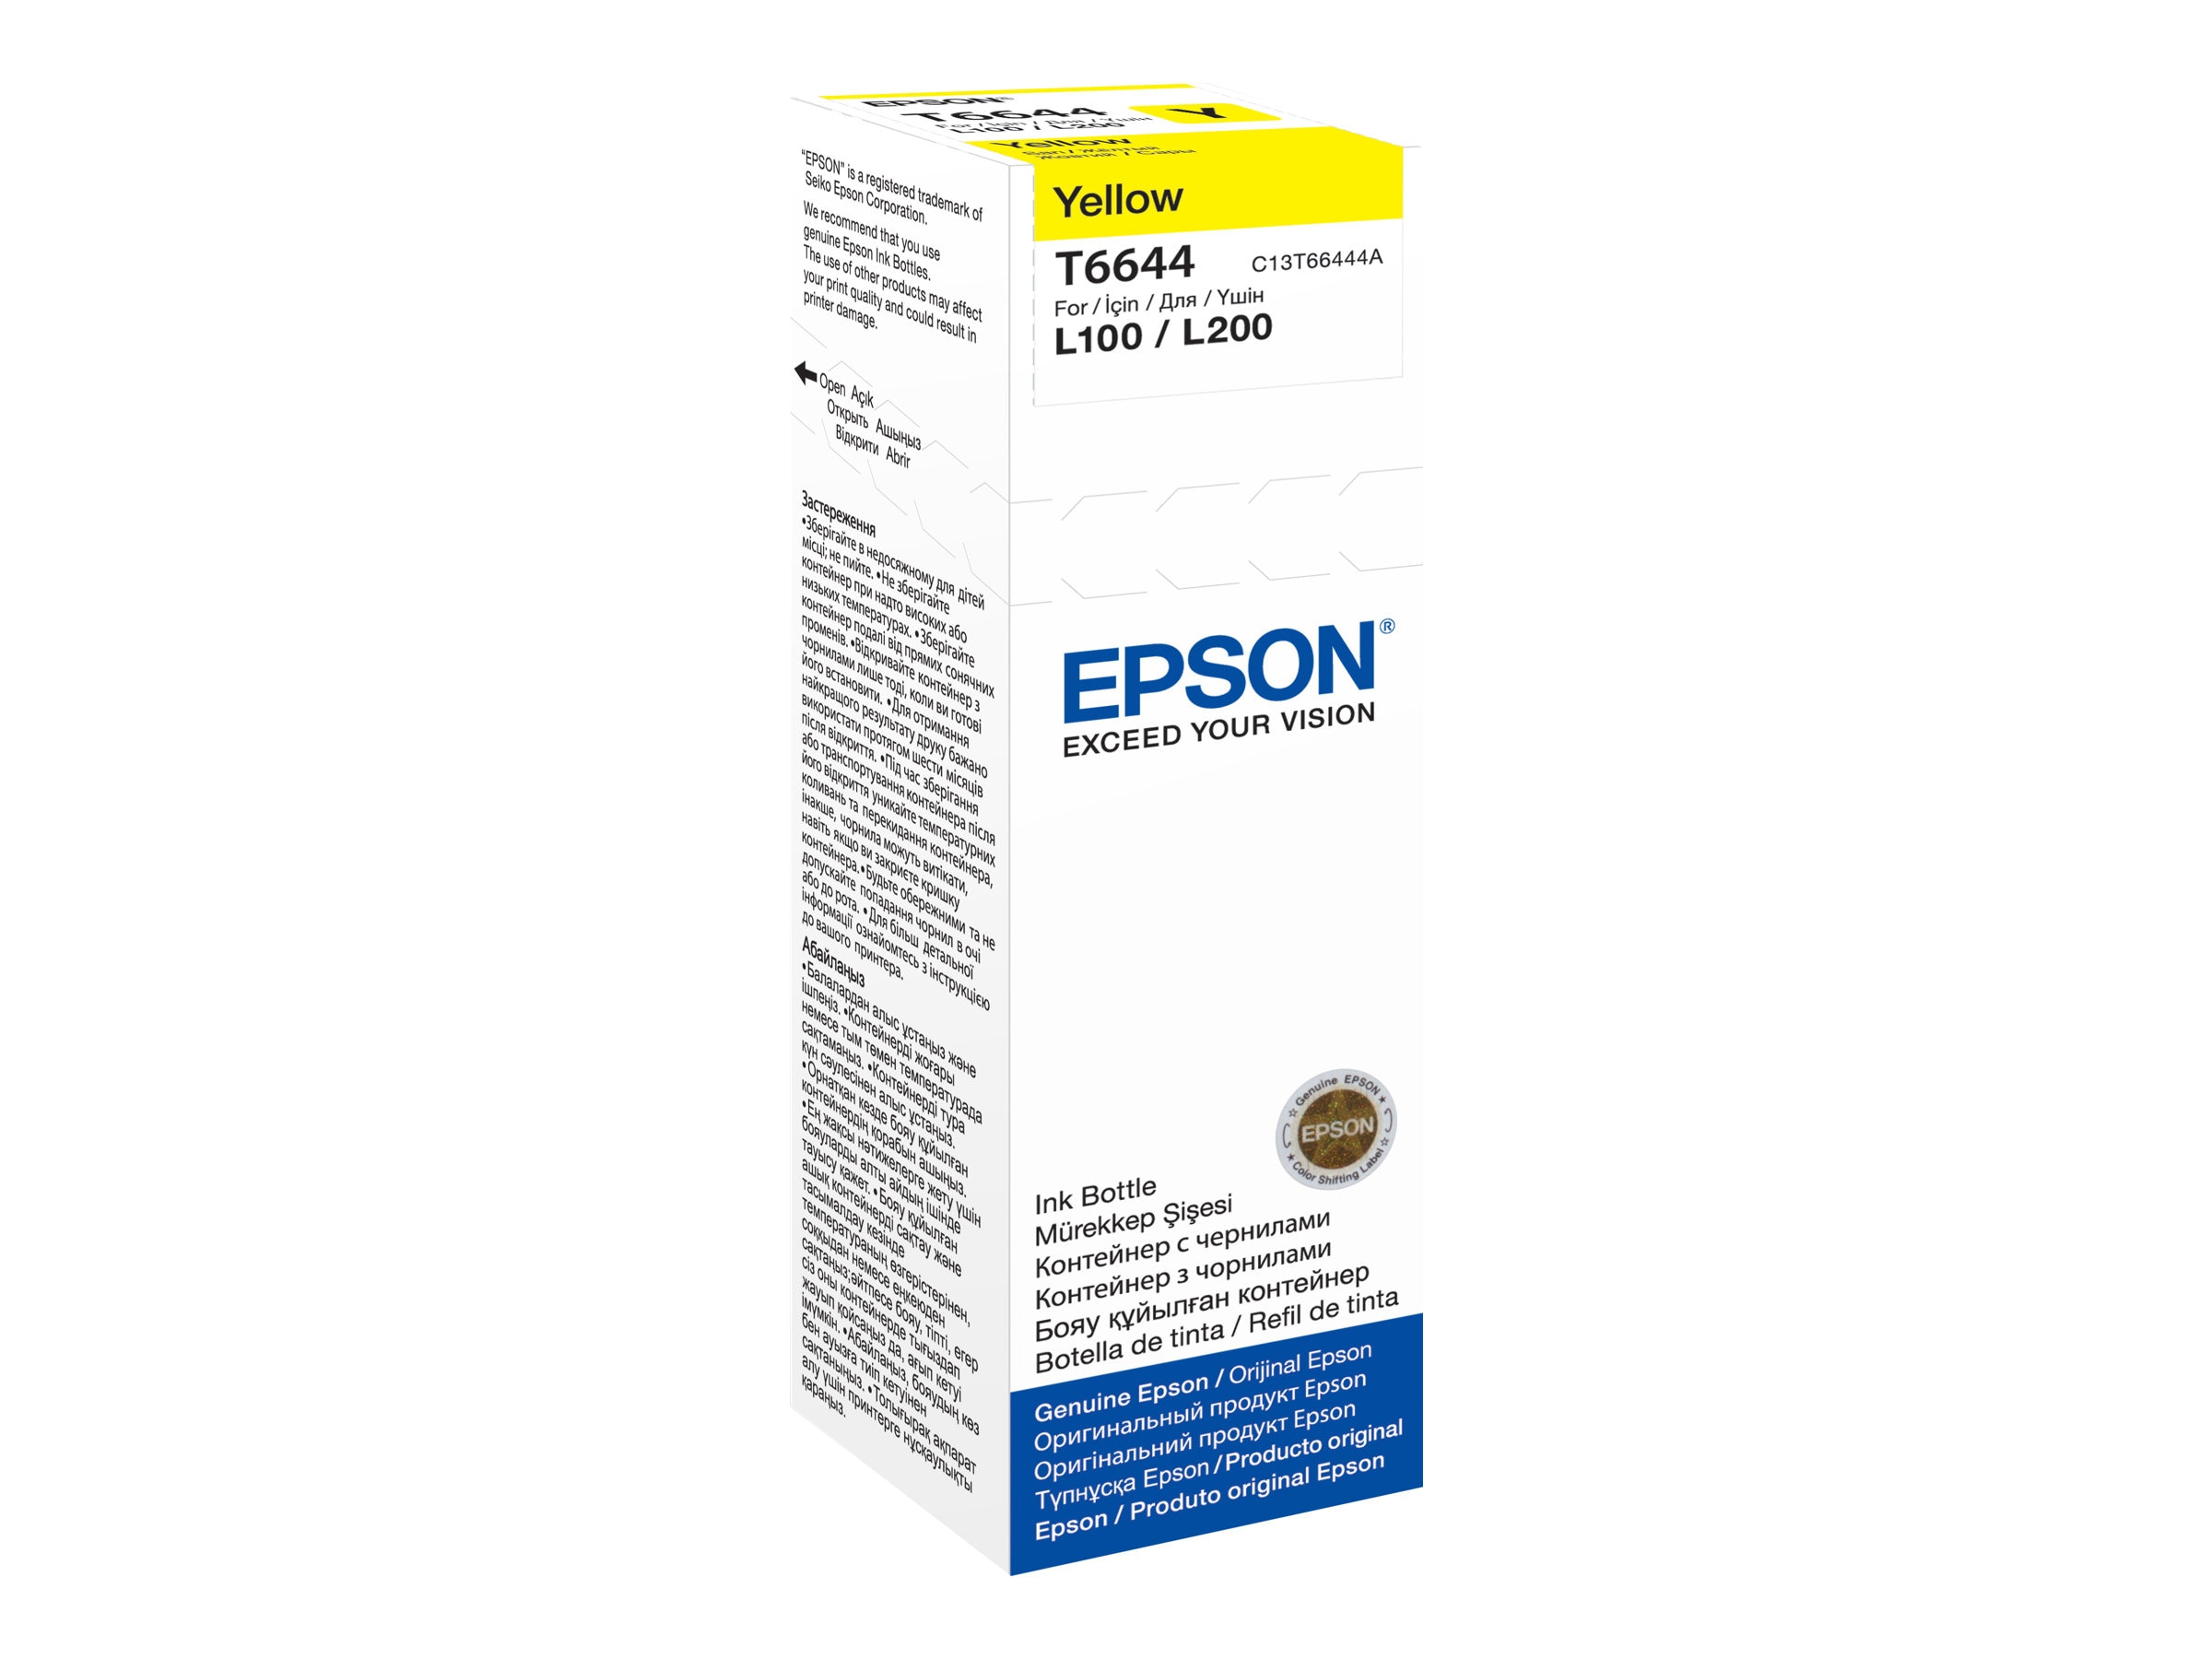 Epson Yellow T664 70ml Dye Ink Bottle